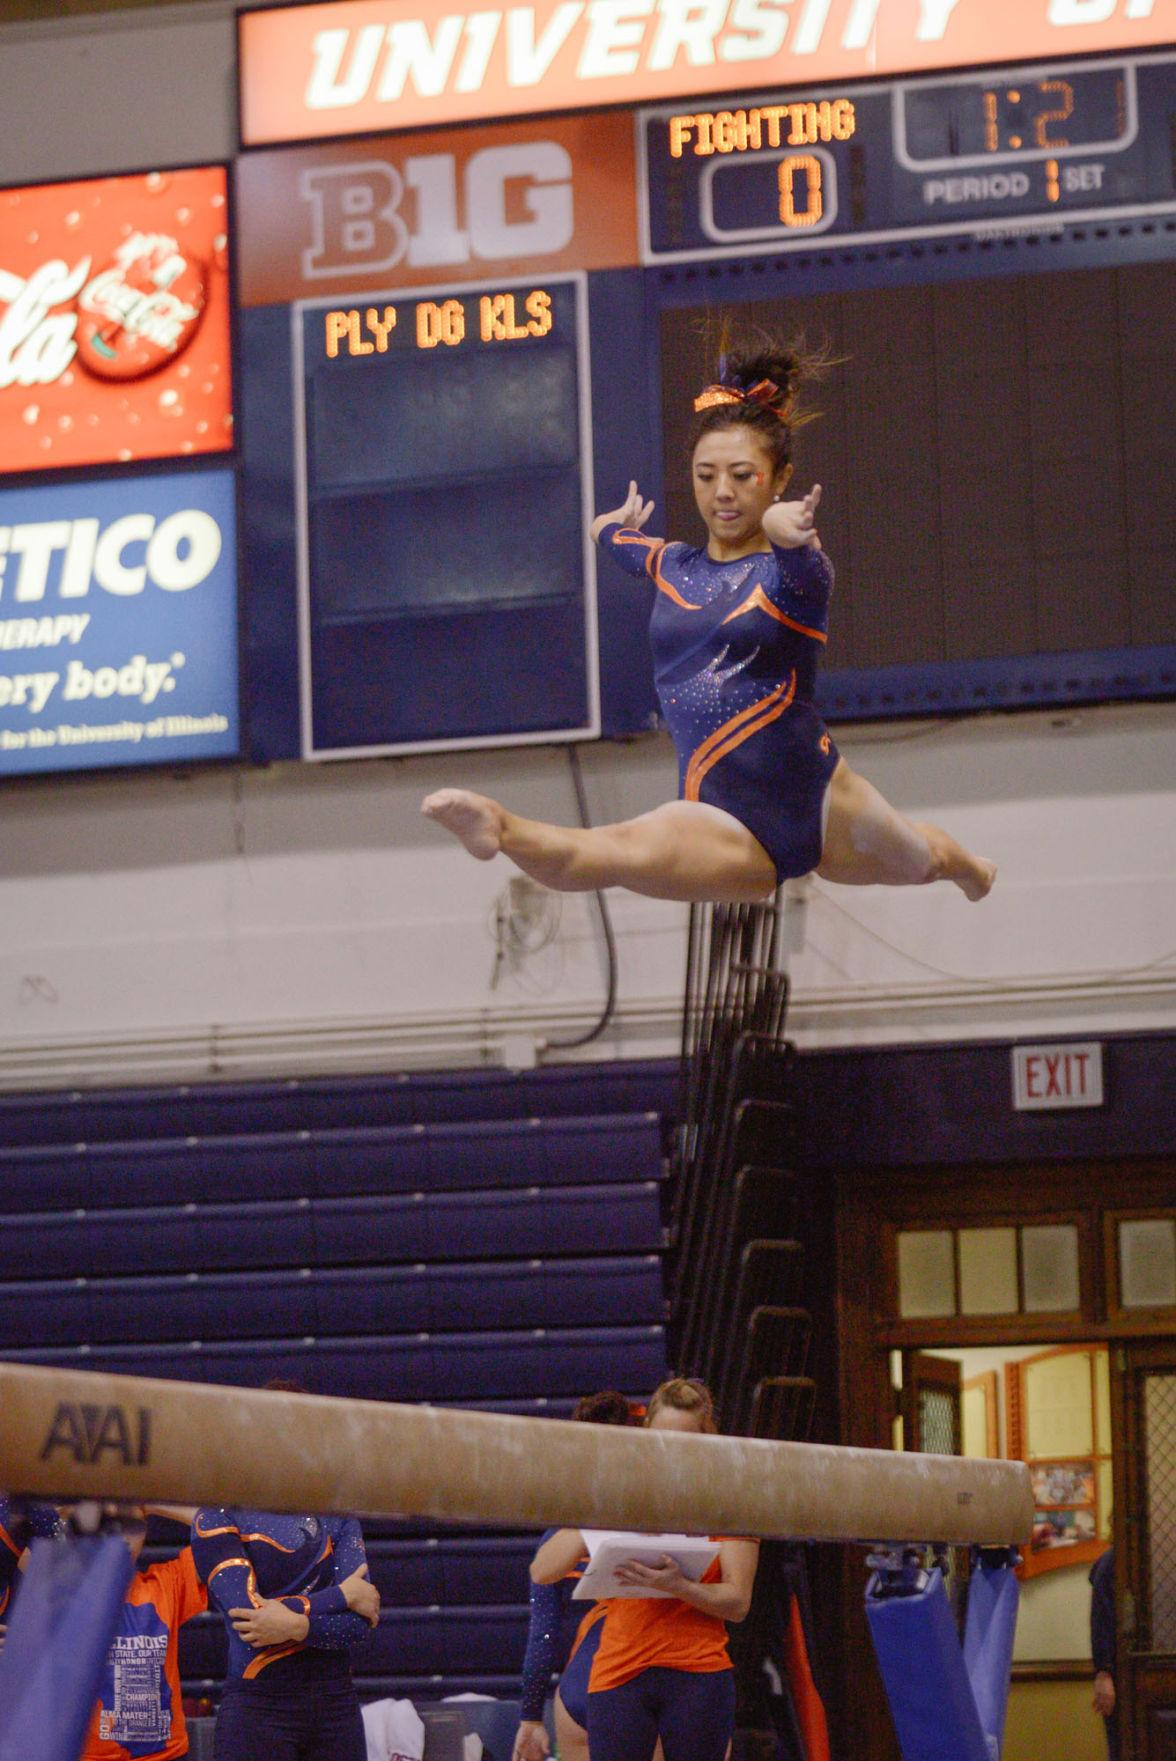 Illinois' Sunny Kato performs a routine on the balance beam during the meet against Minnesota at Huff Hall on Saturday, February 7, 2015. The Illini won 195.775-195.375.